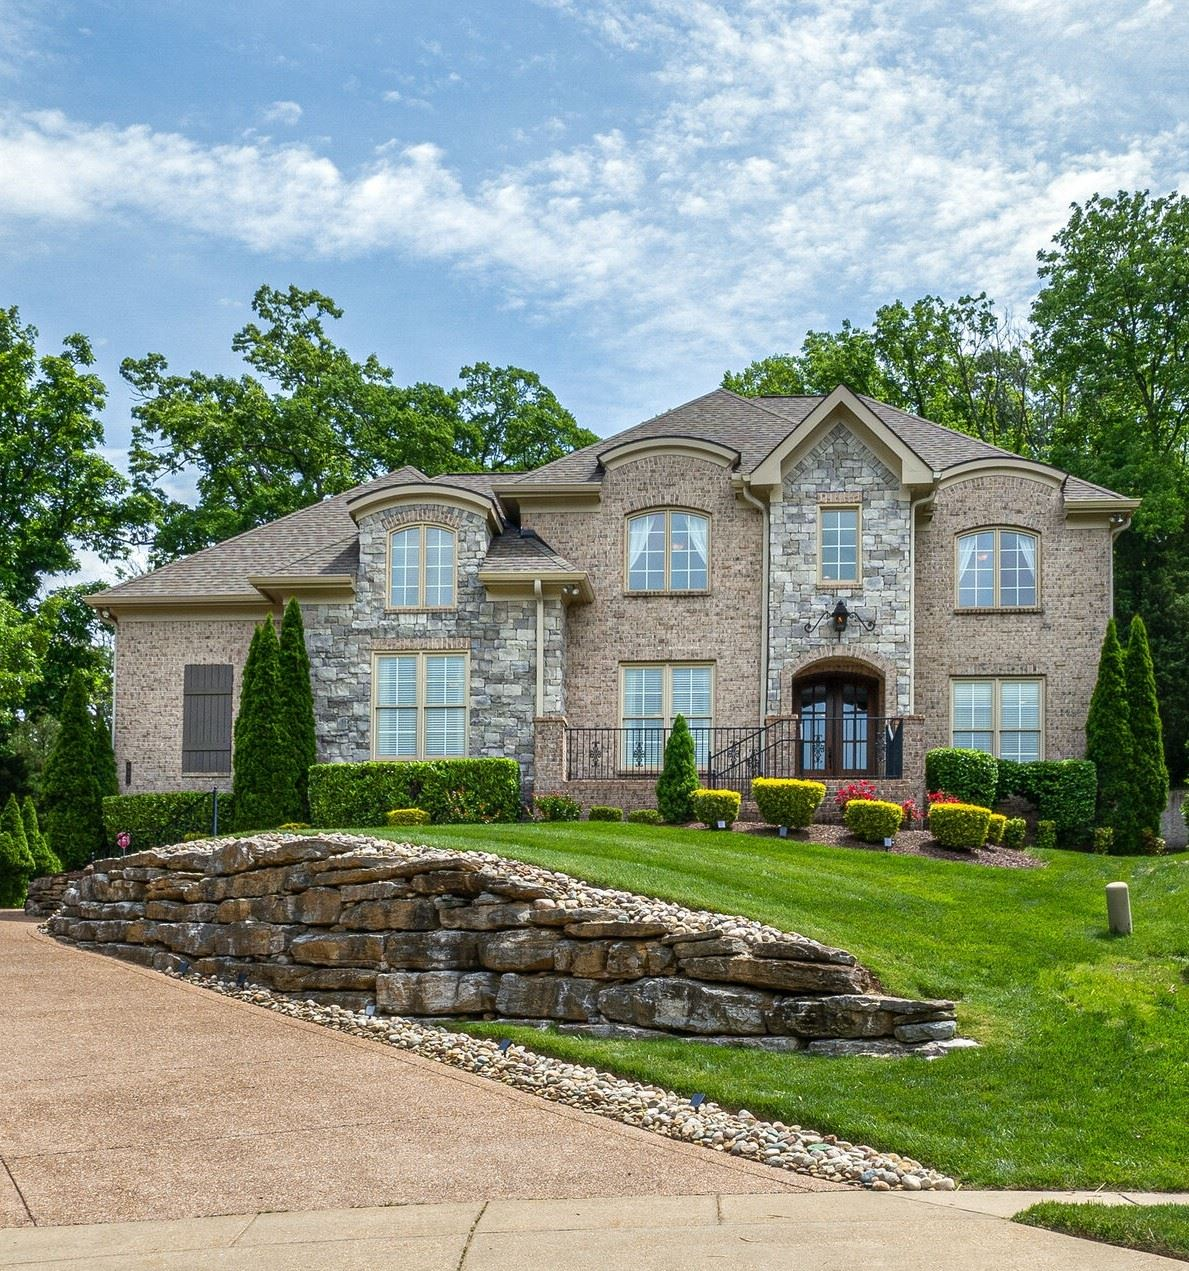 Photo of 437 Beauchamp Cir, Franklin, TN 37067 (MLS # 2252992)